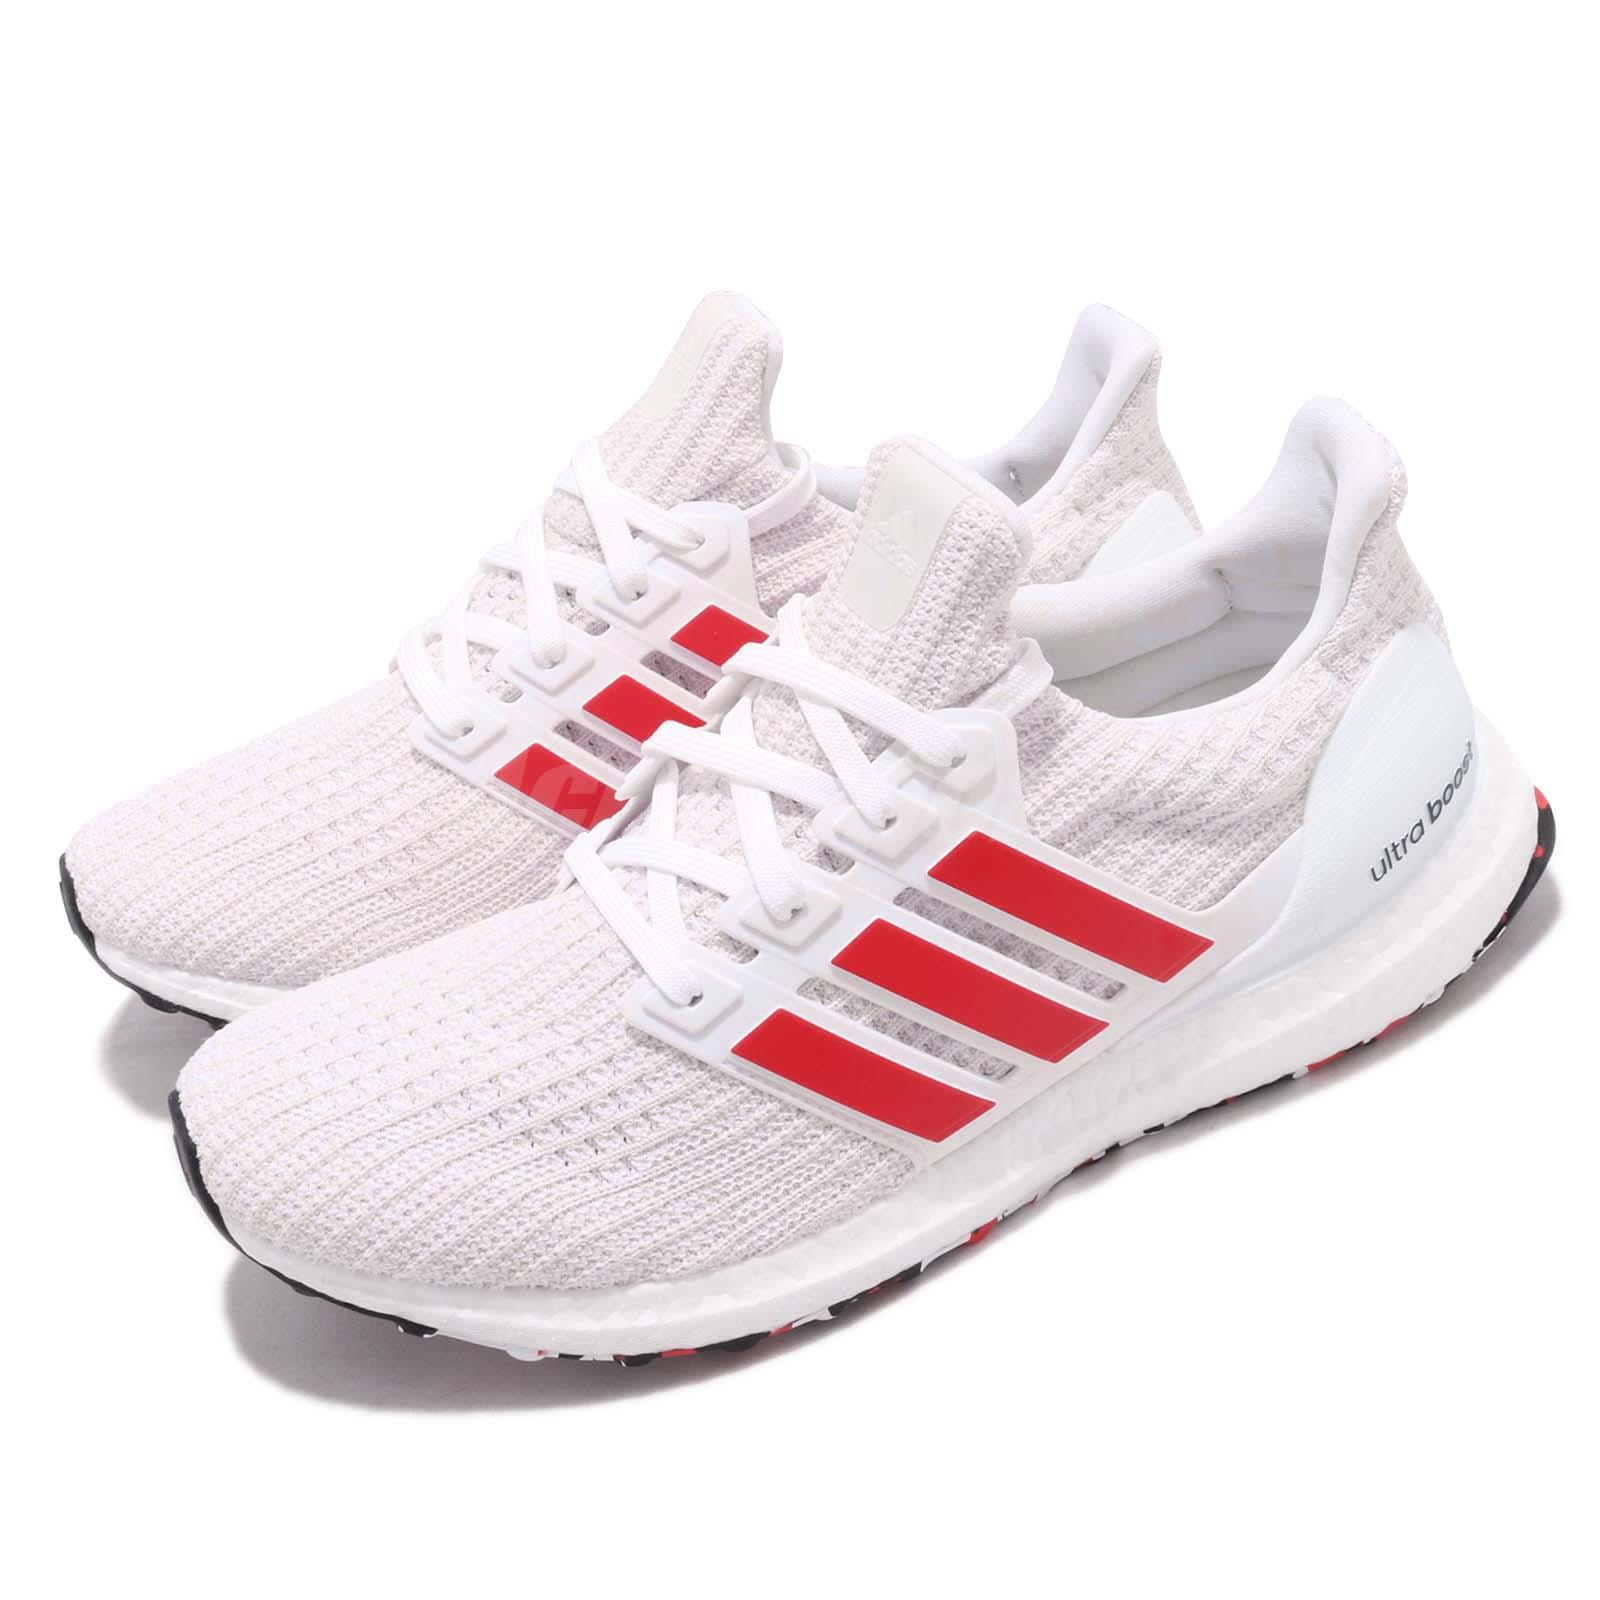 9a0c989cce271 Details about adidas UltraBoost 4.0 Active Red Stripes White Men Running  Shoes Sneakers DB3199